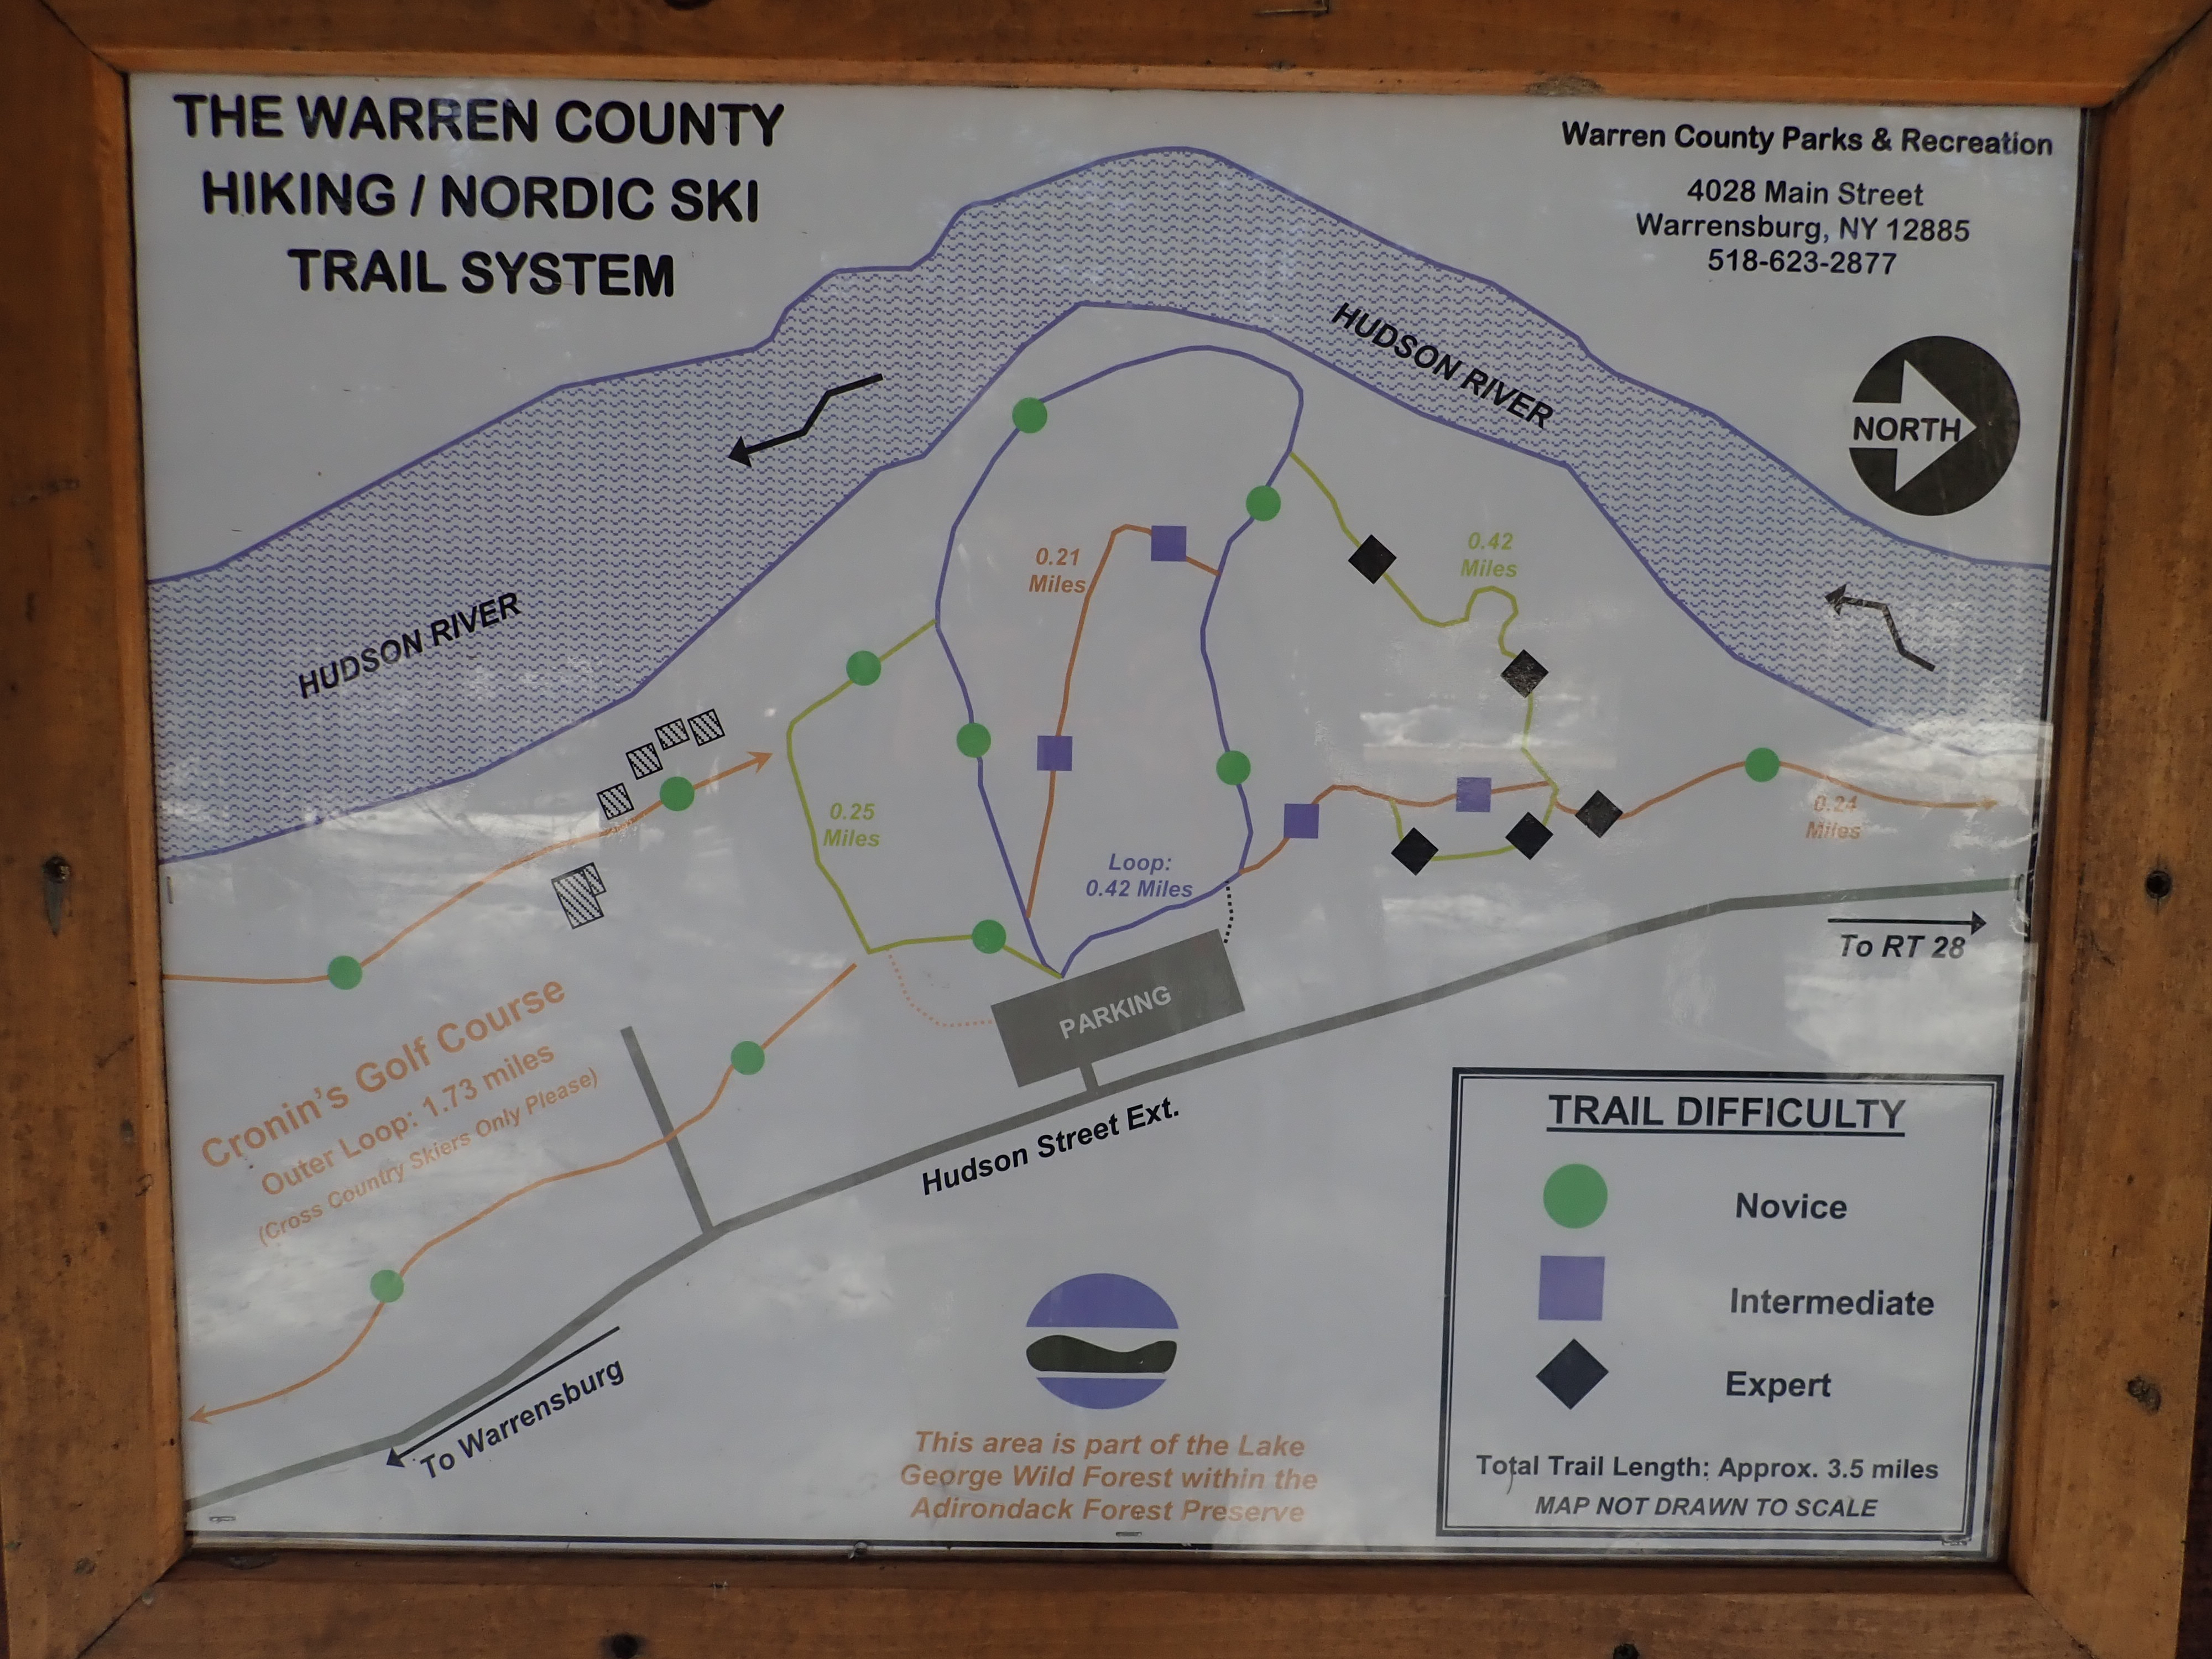 Warren County Nature Trails